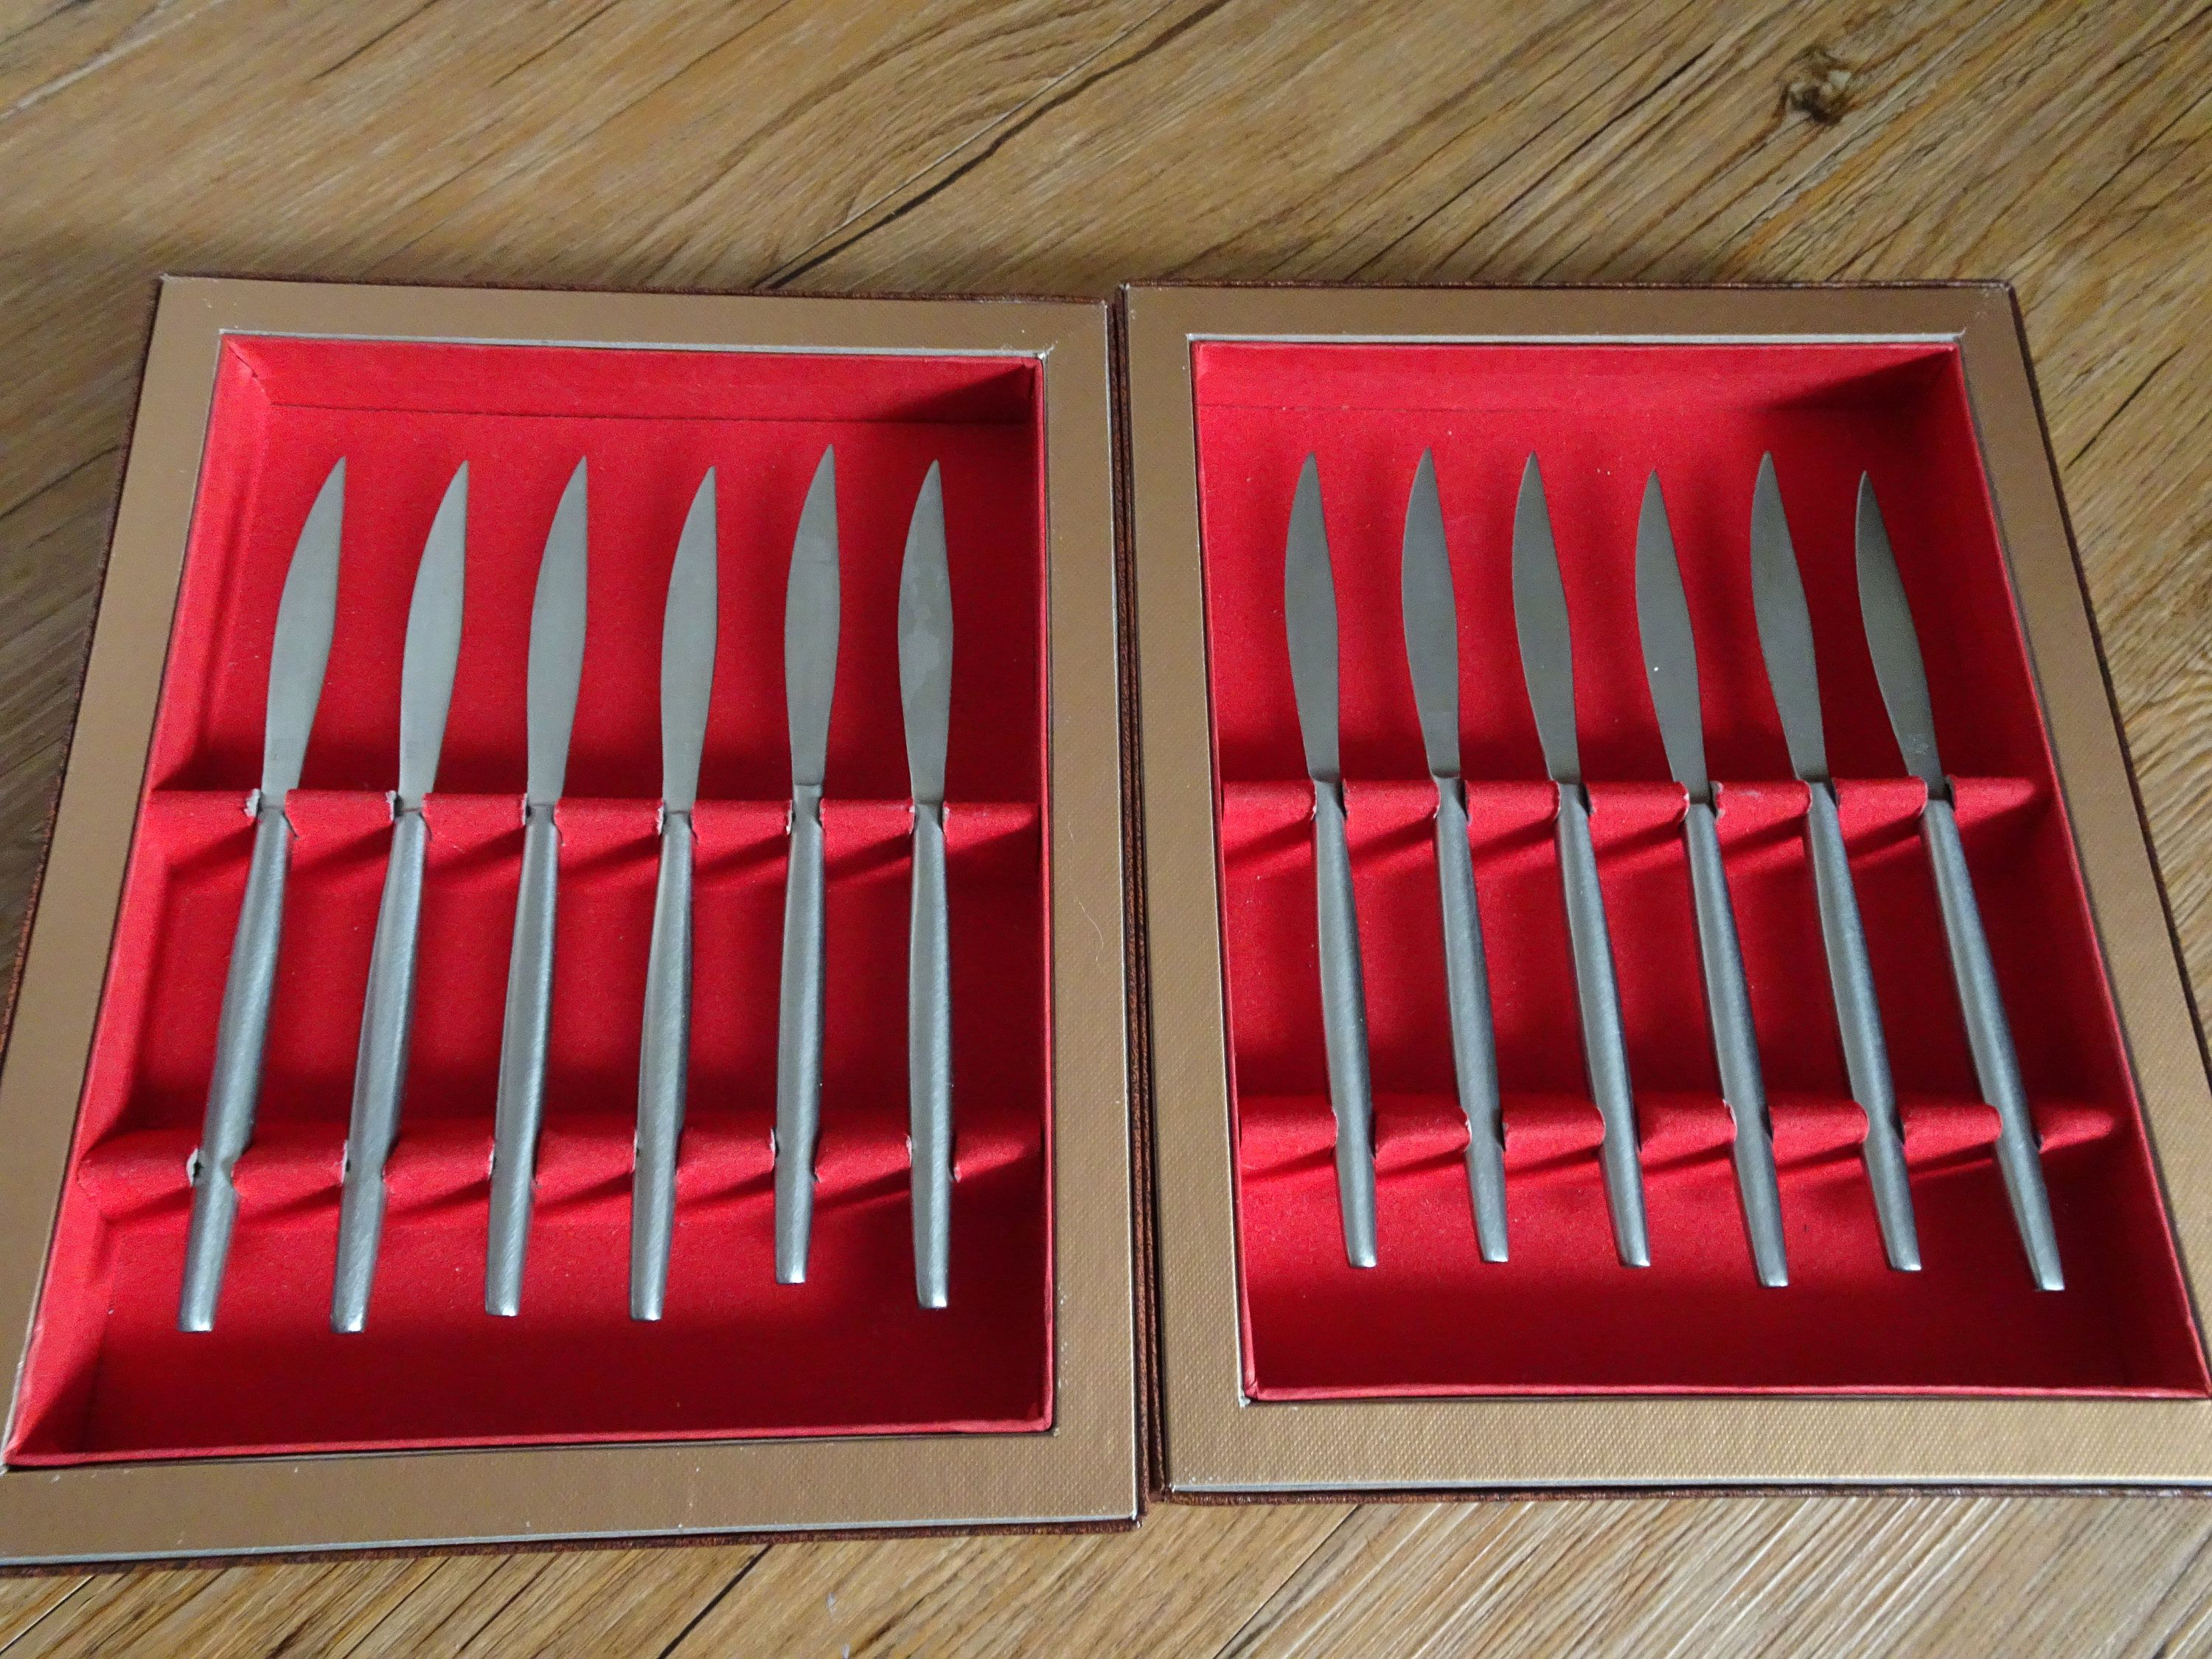 Table Setting With Steak Knife  U0026 Mid Century Kalmar Designs Fruit Knives Steak Knives